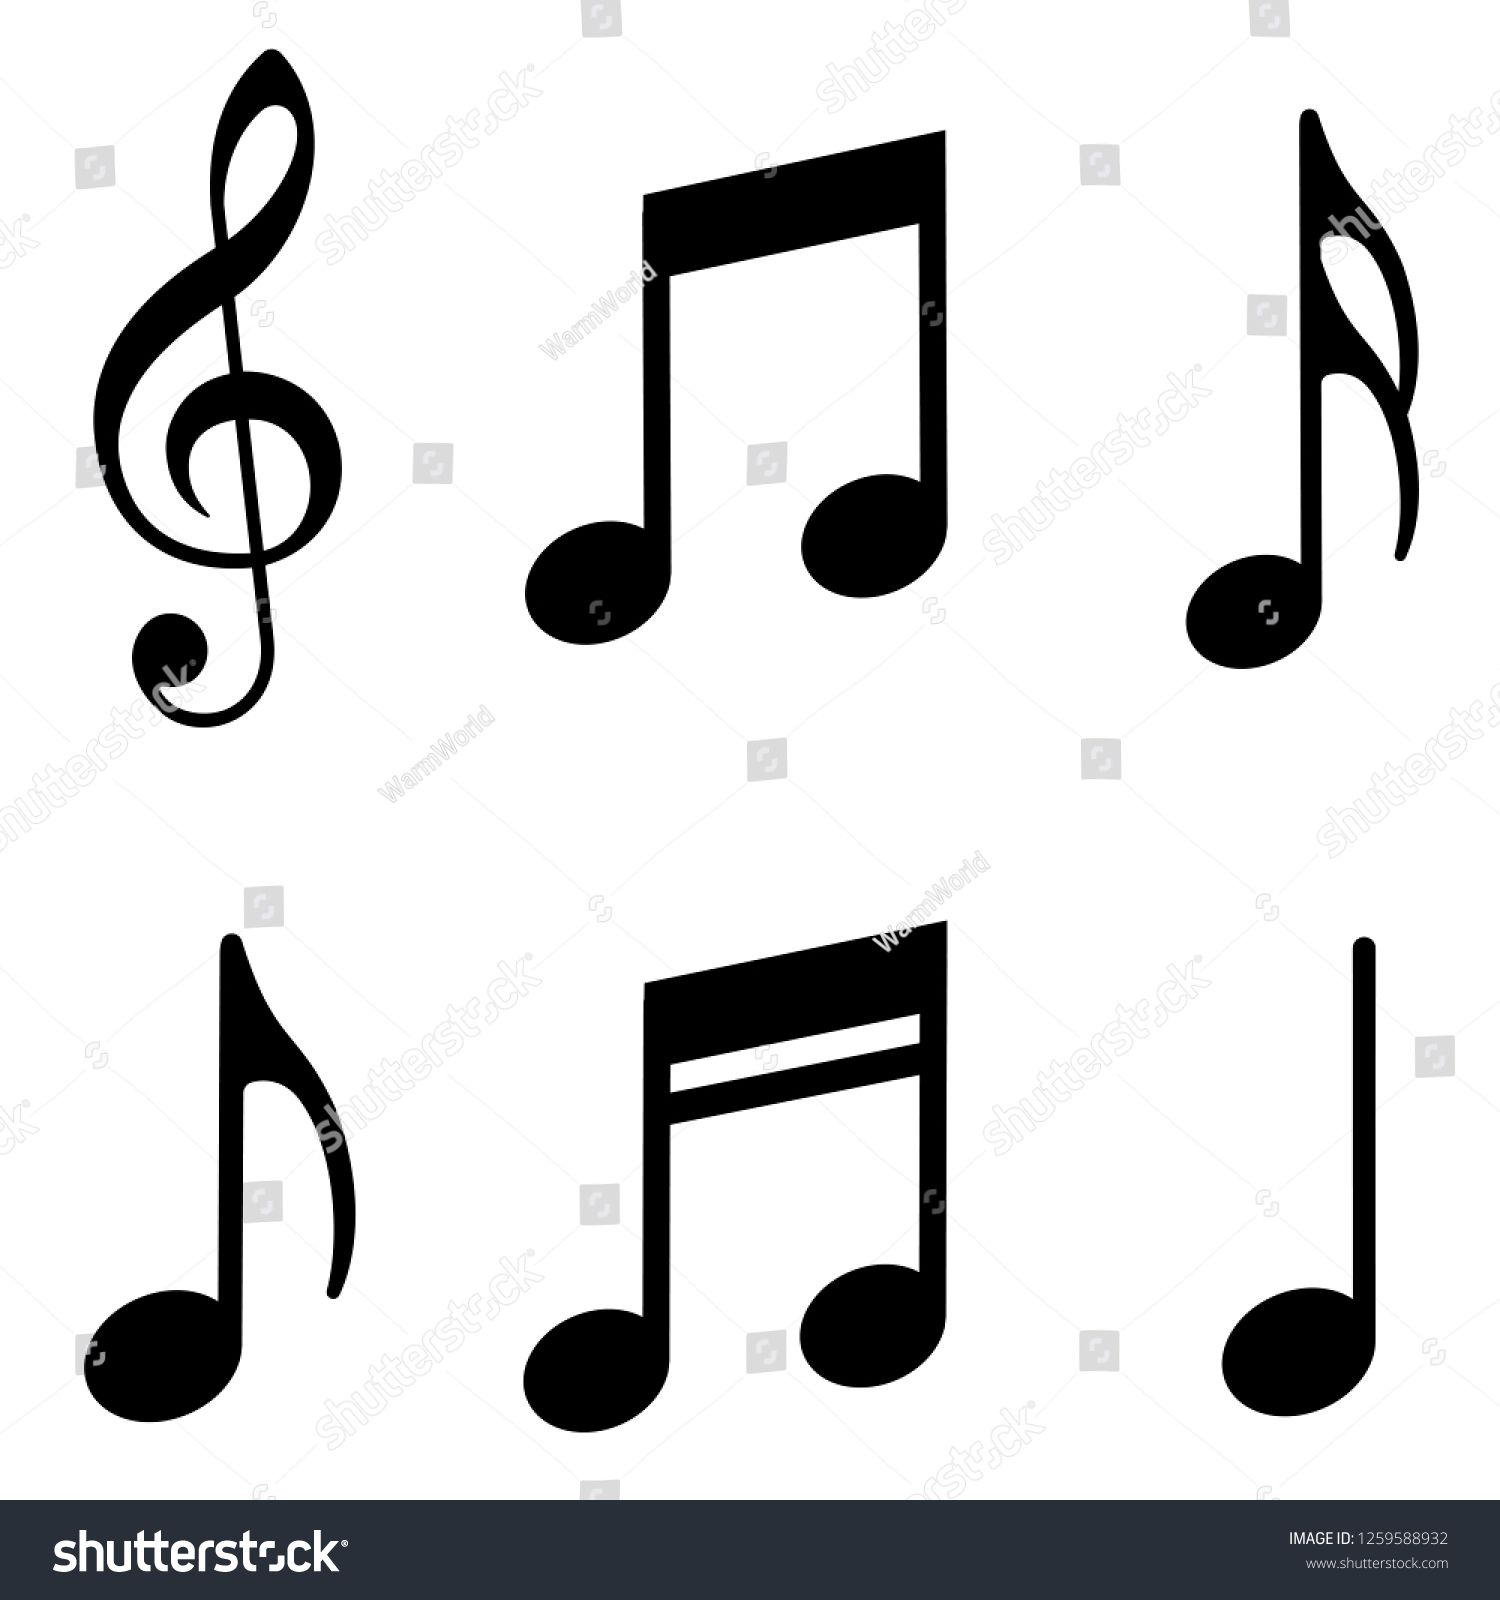 Music notes icons set. Vector illustration Sponsored ,